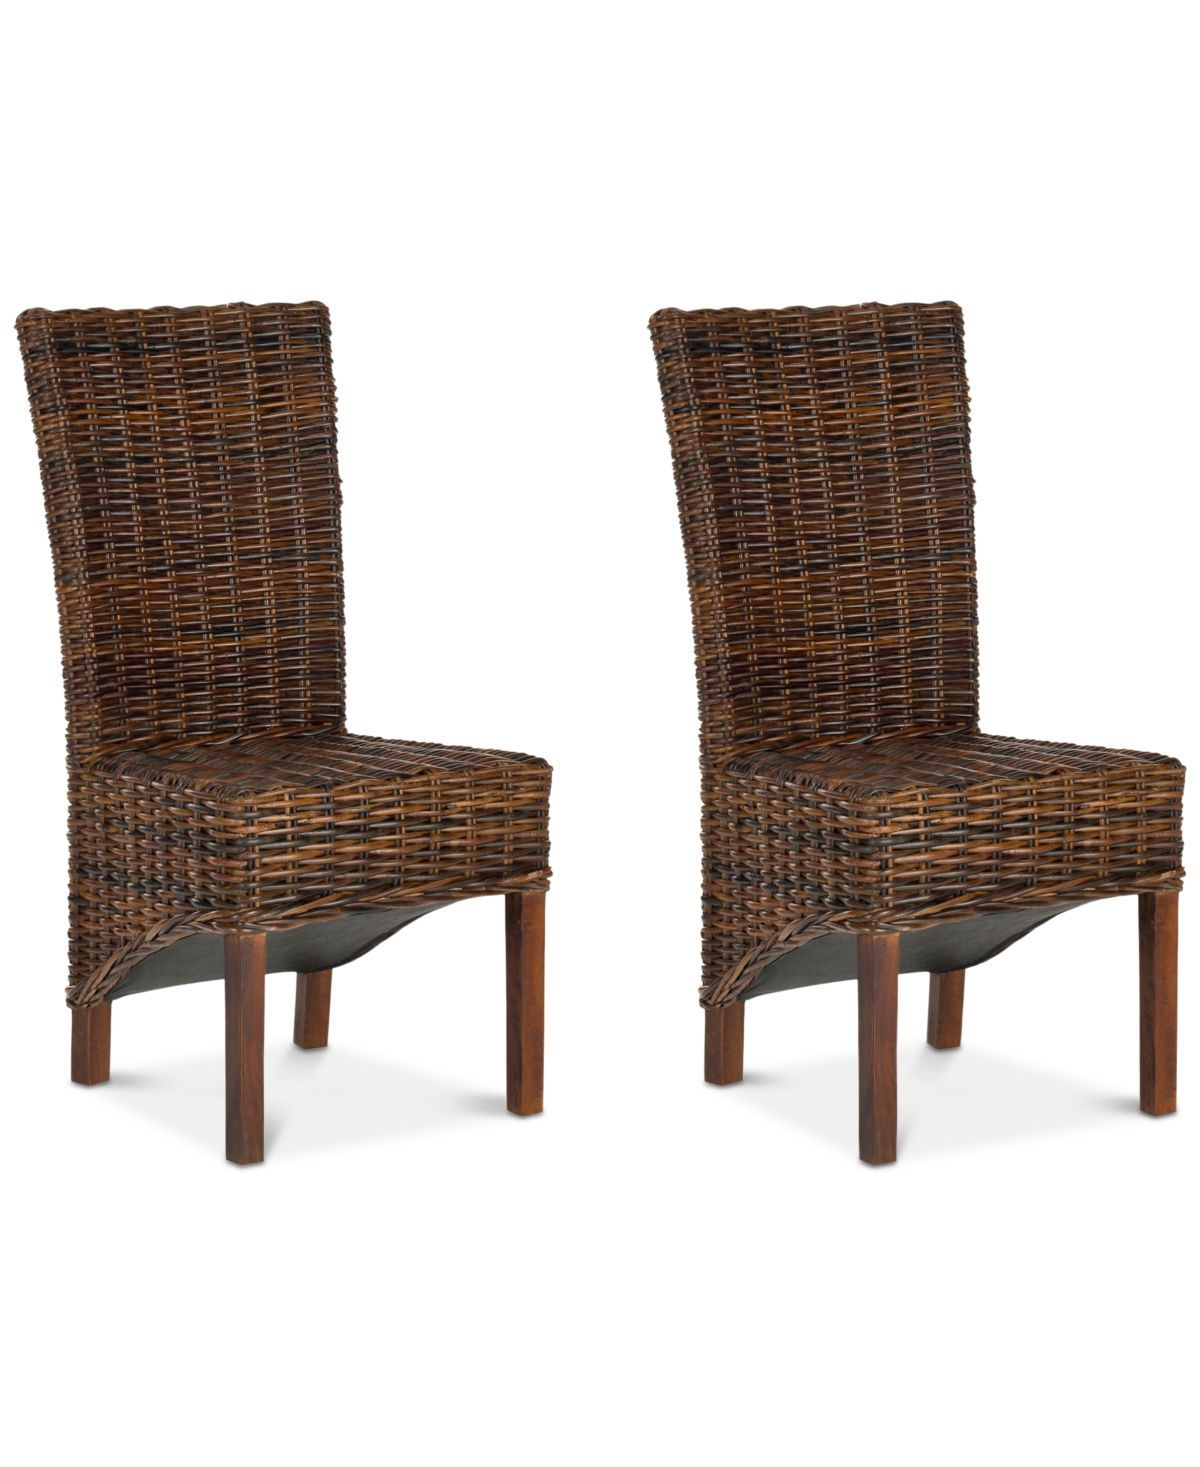 Furniture Lynmore Set Of 2 Wicker Dining Chairs Reviews Furniture Macy S Chairs Dining Furn Dining Chairs Outdoor Wicker Furniture Wicker Dining Chairs